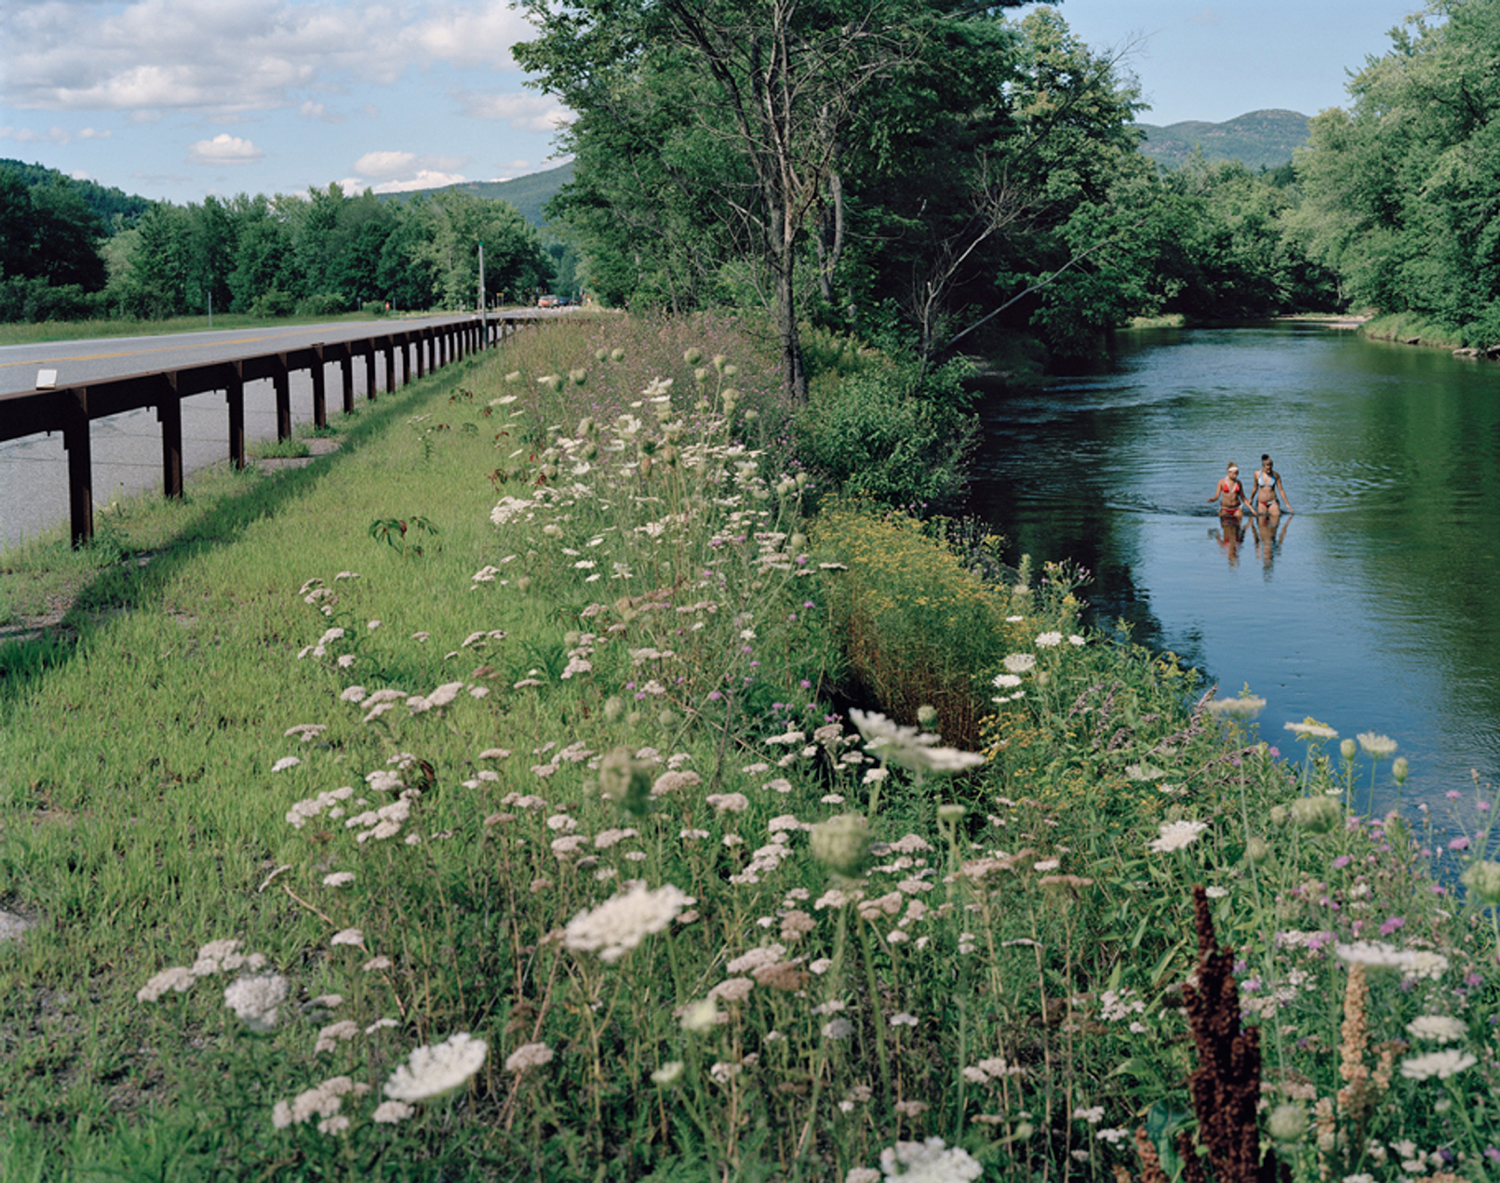 Rebecca Soderholm     Ausable River, Route 73, Keene NY,  2006    Inkjet print, edition of 7    24 x 30 inches